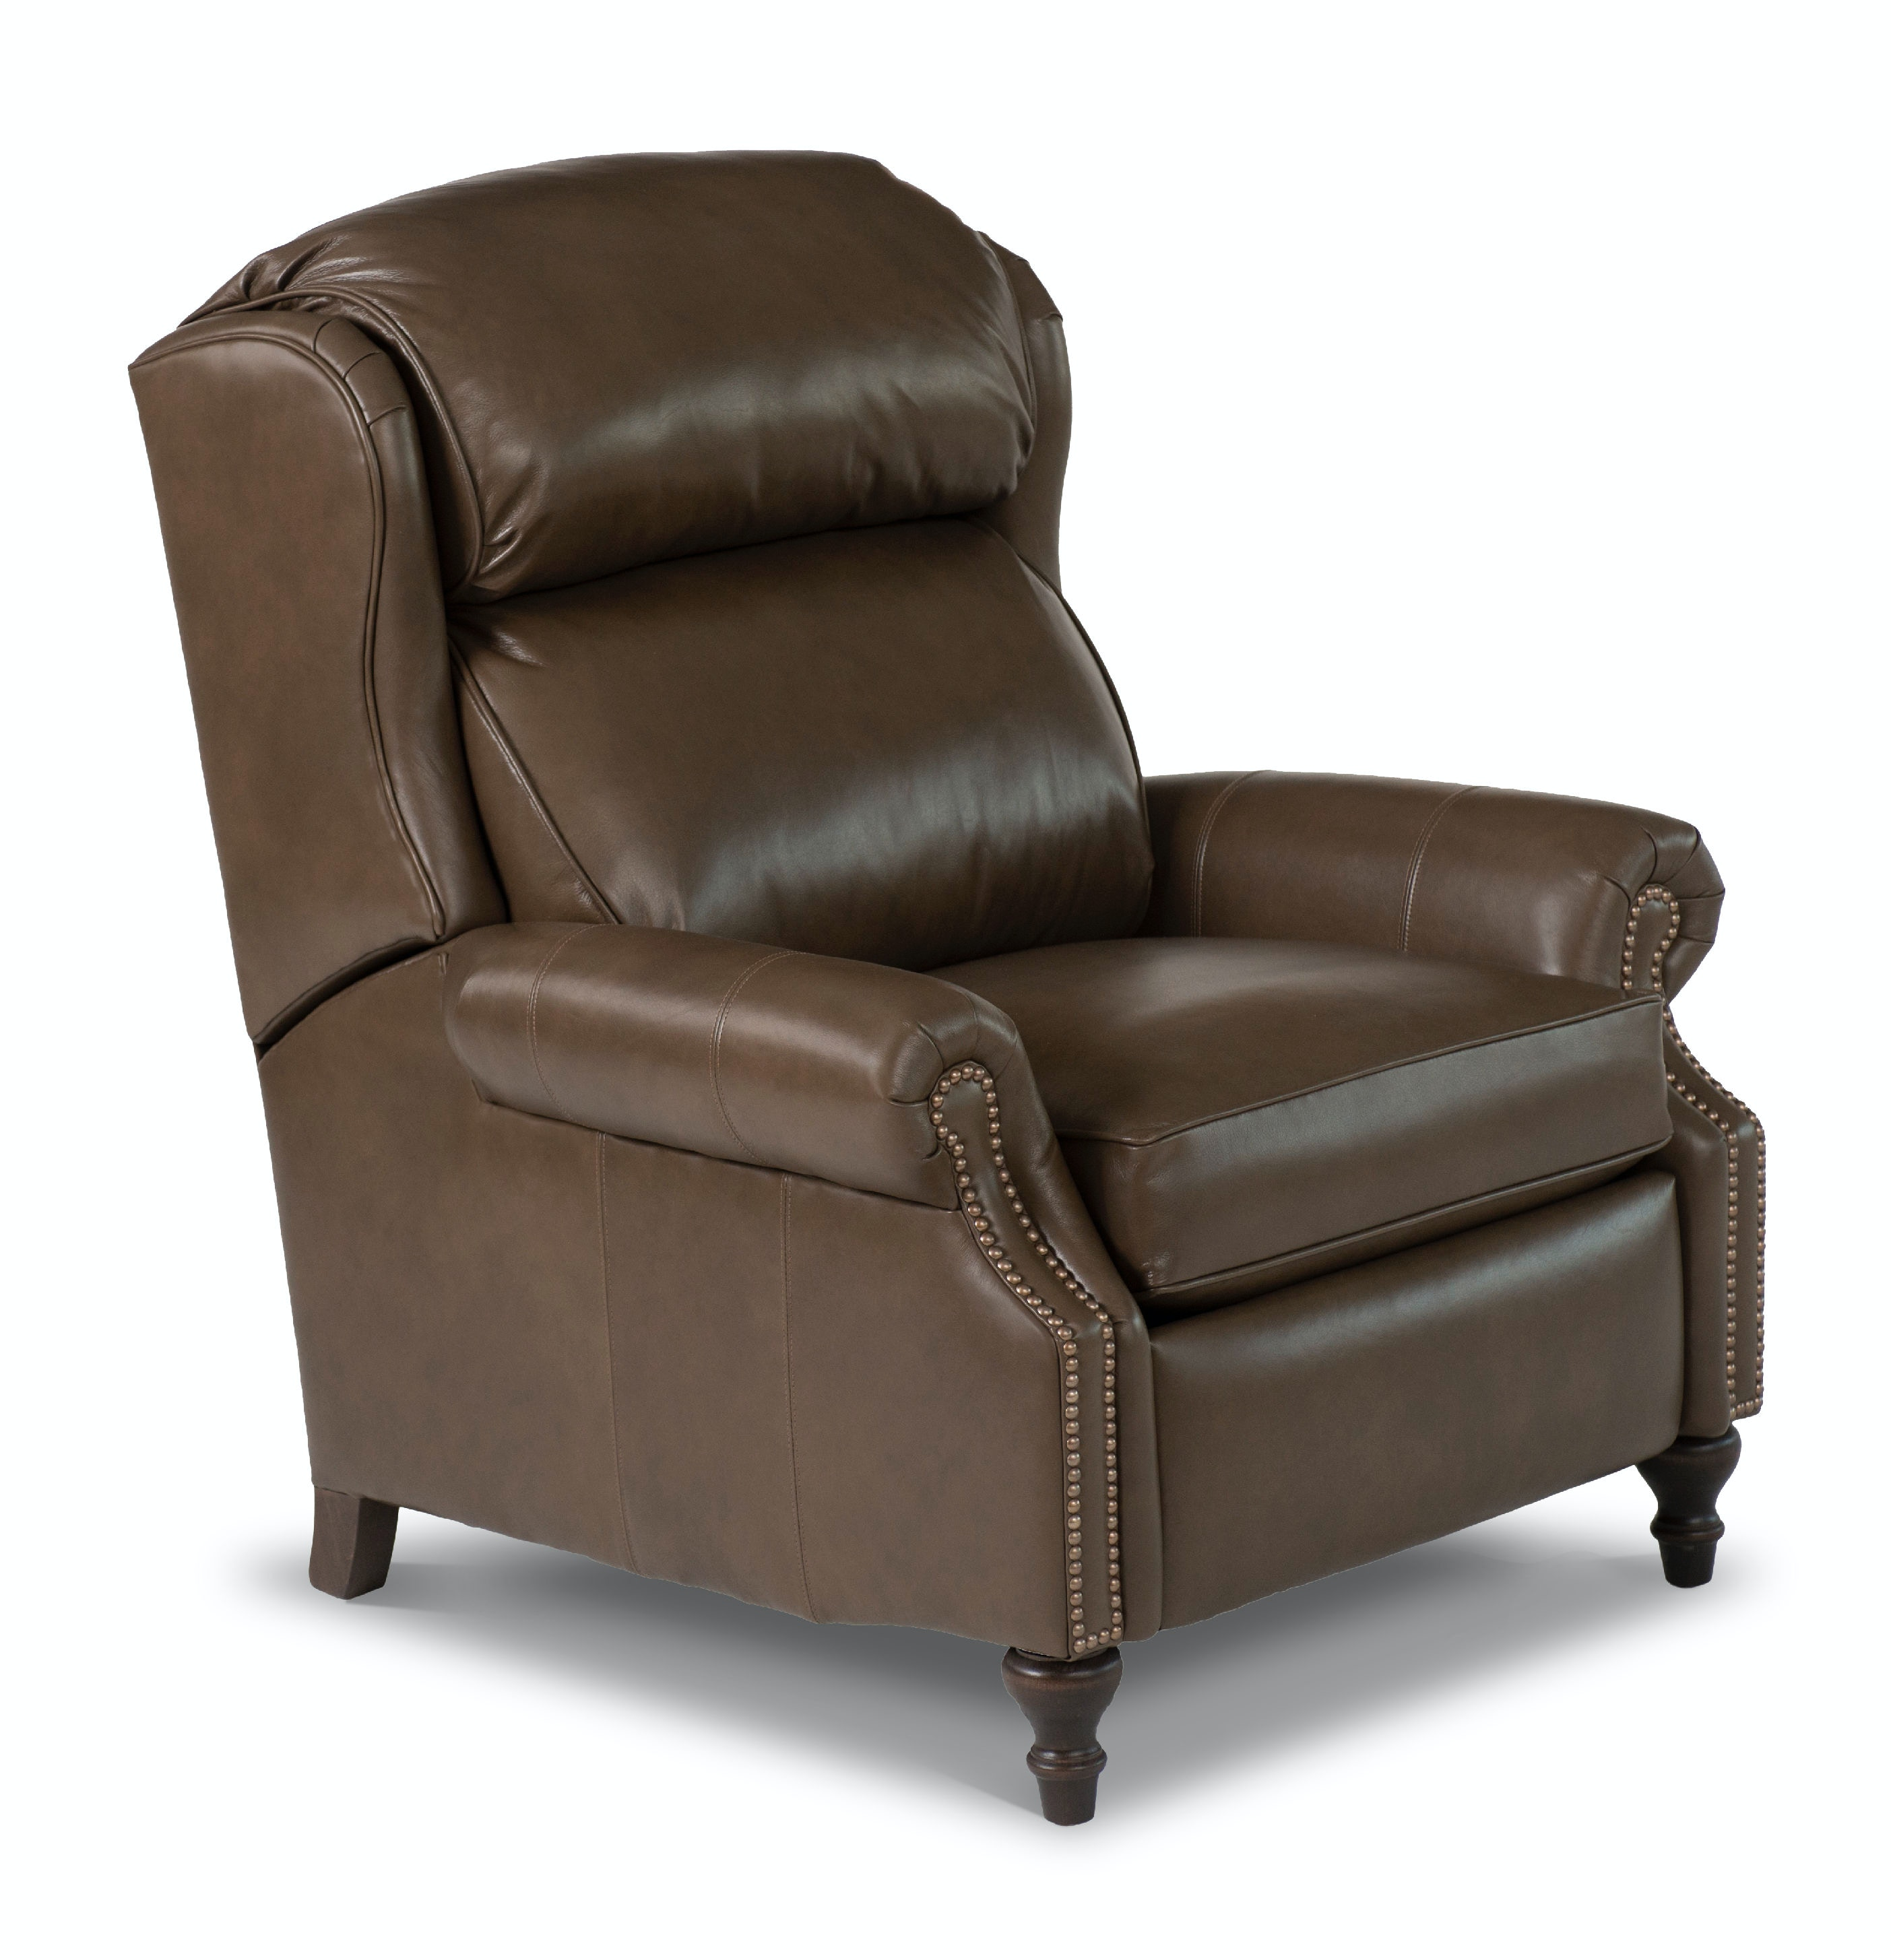 Smith Brothers Big/Tall Motorized Reclining Chair 732 77